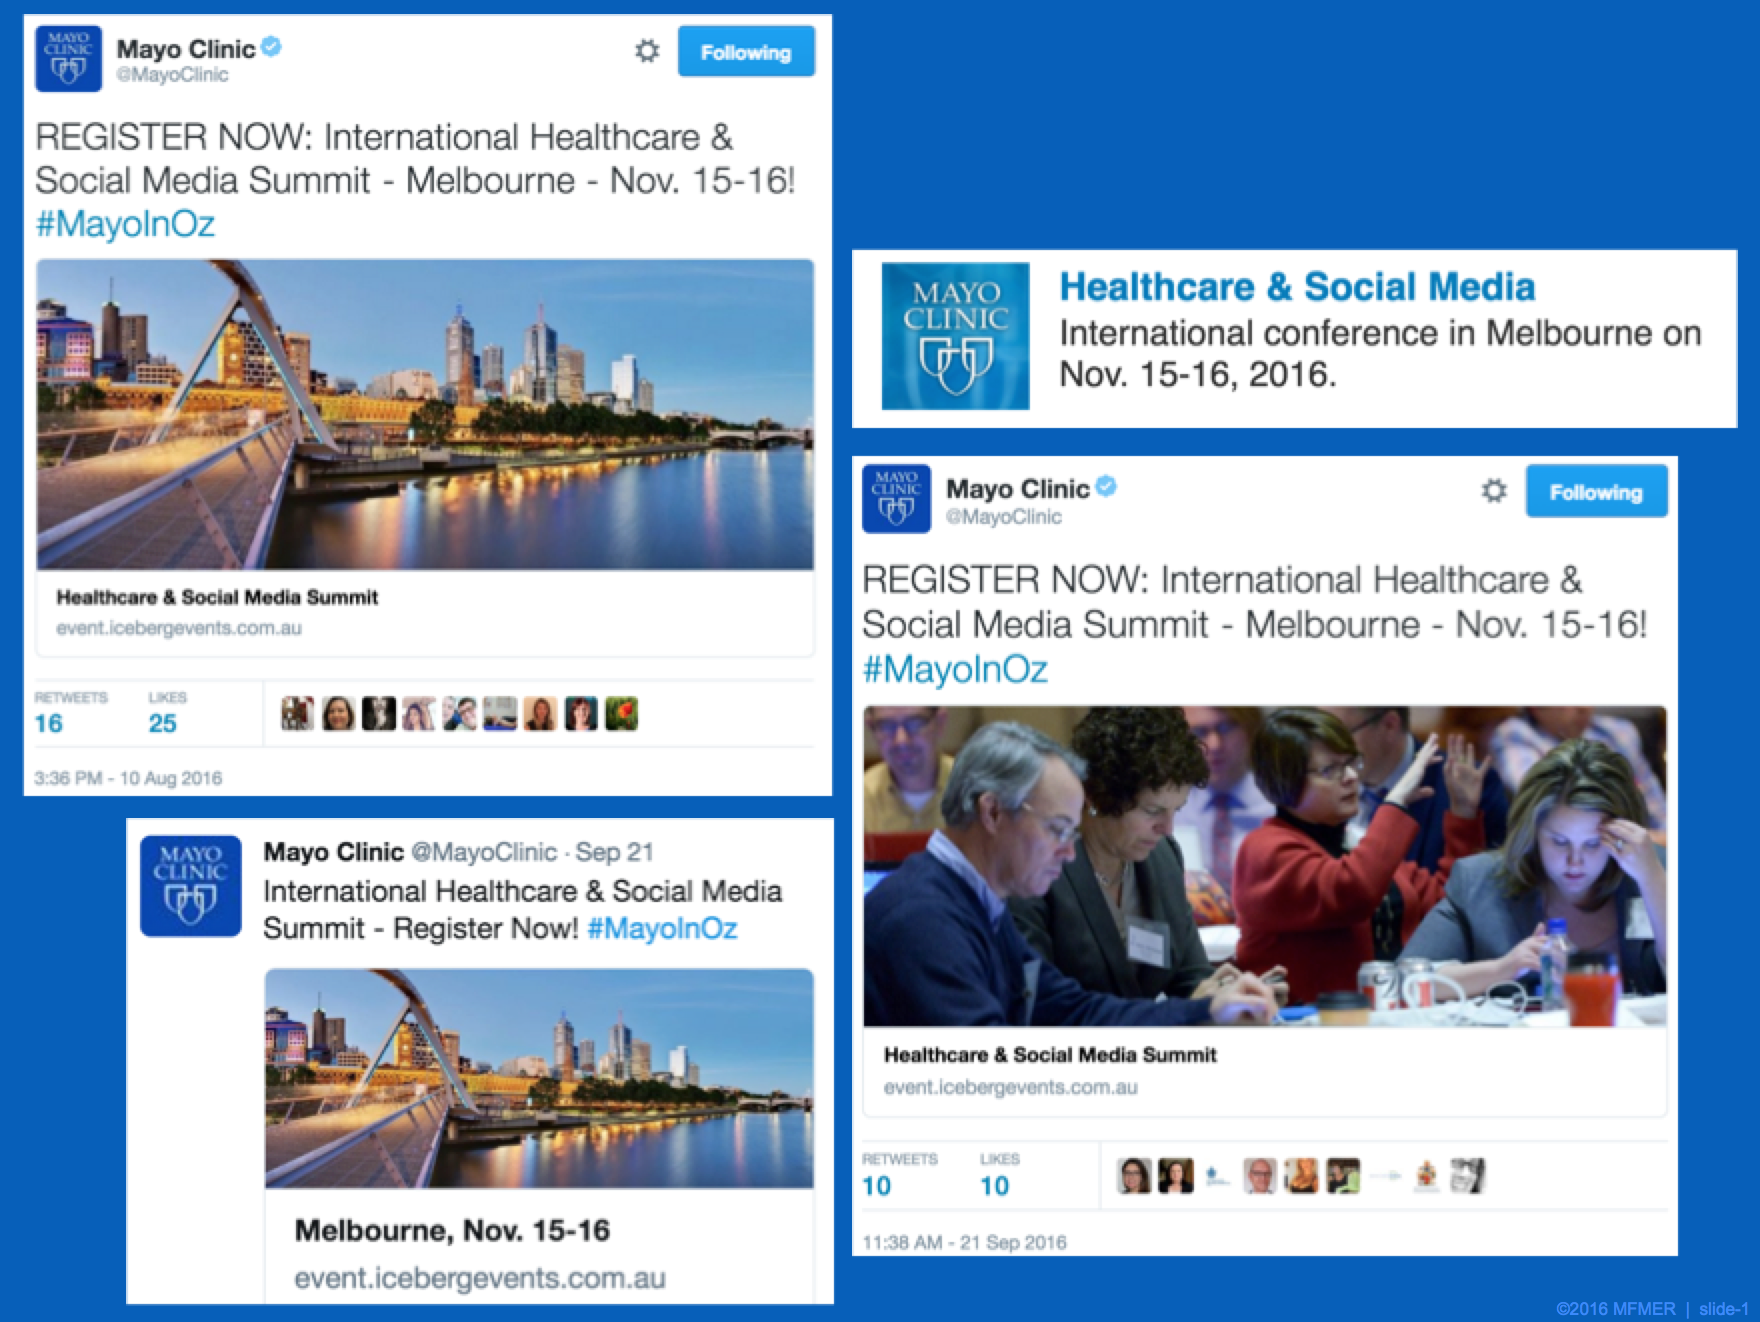 A Focused Look at Twitter Advertising for #MayoInOz | Mayo